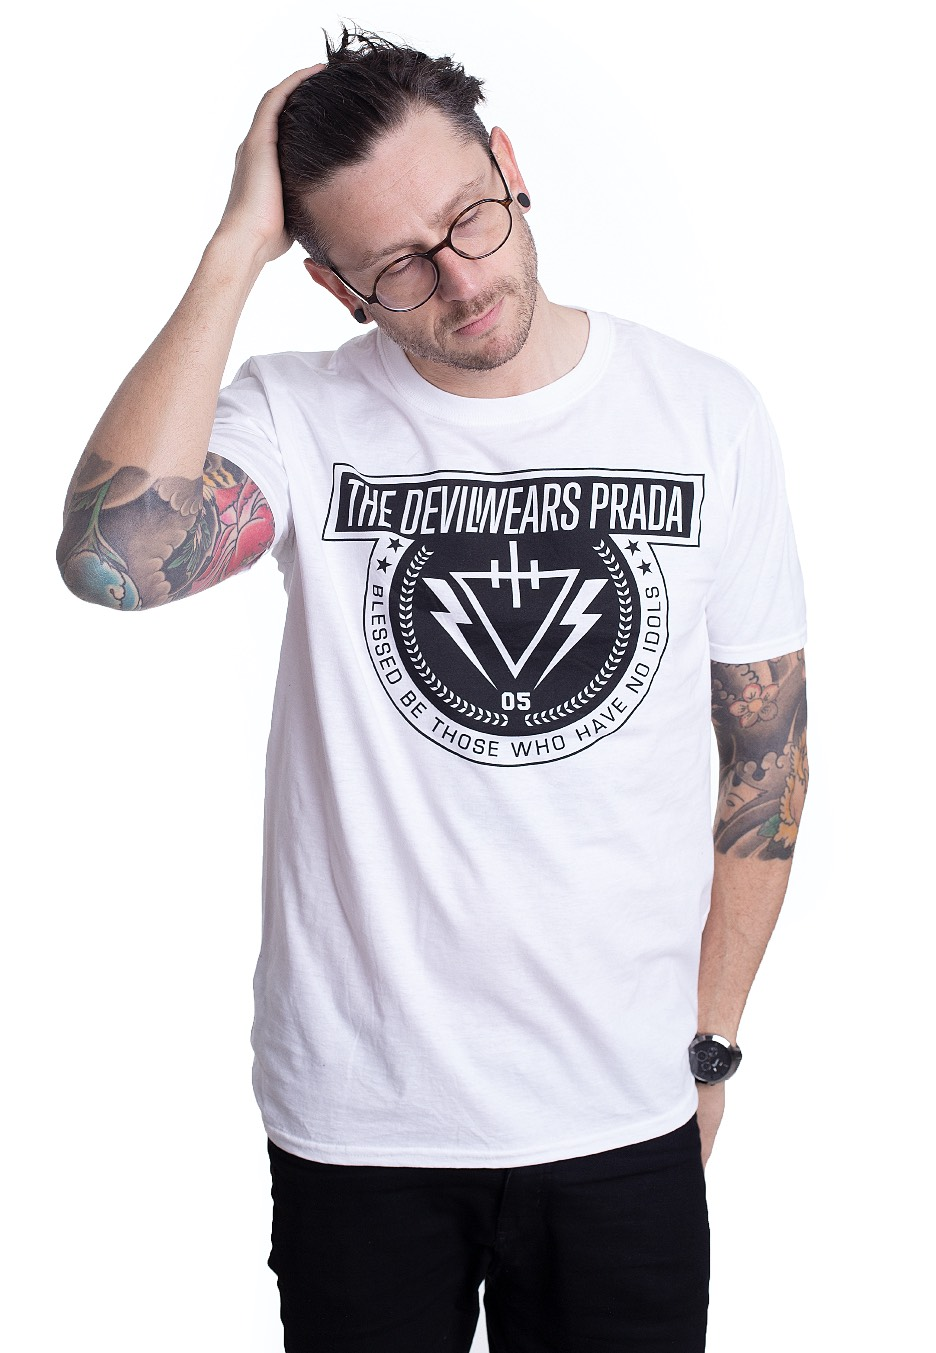 the devil wears prada no idols white t shirt impericon com us the devil wears prada no idols white t shirt